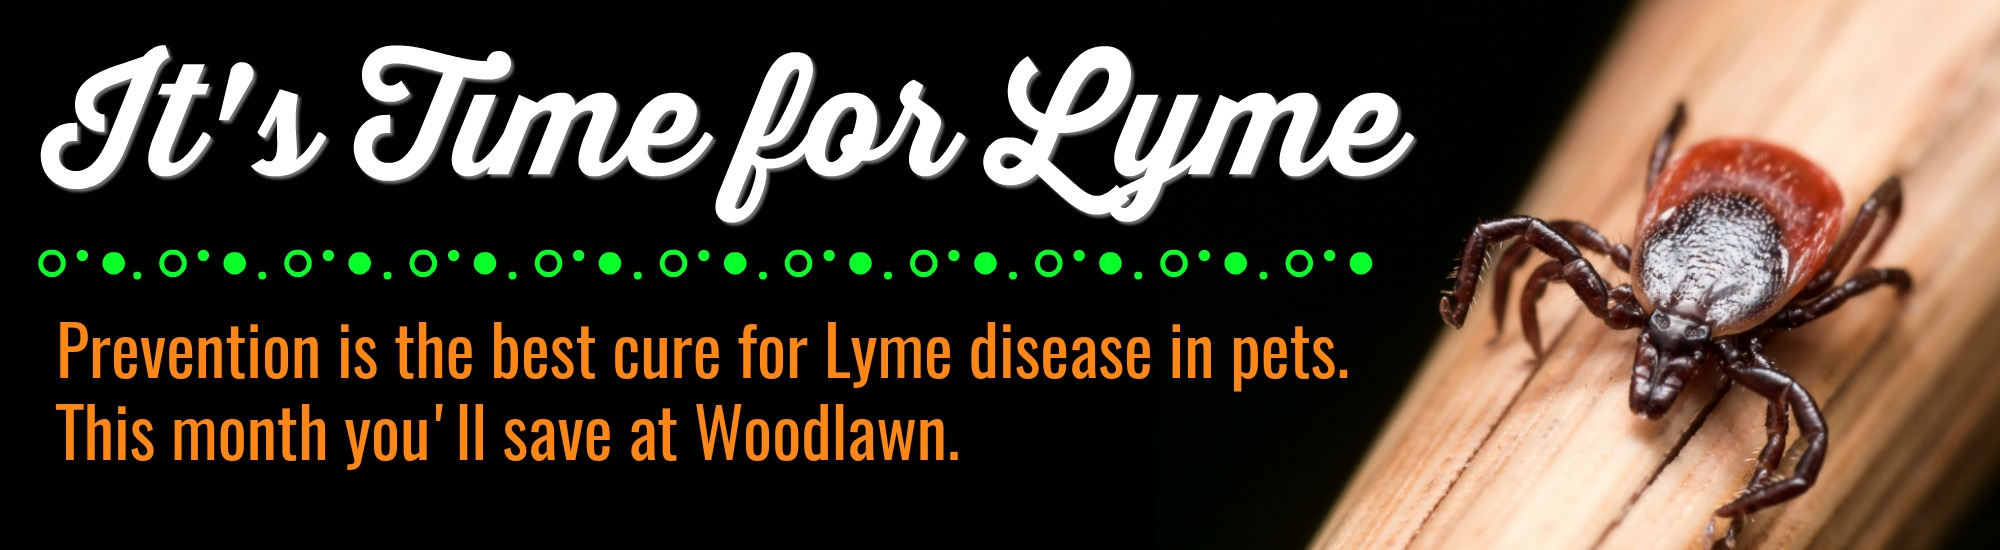 Time to save on Lyme disease prevention at Woodlawn